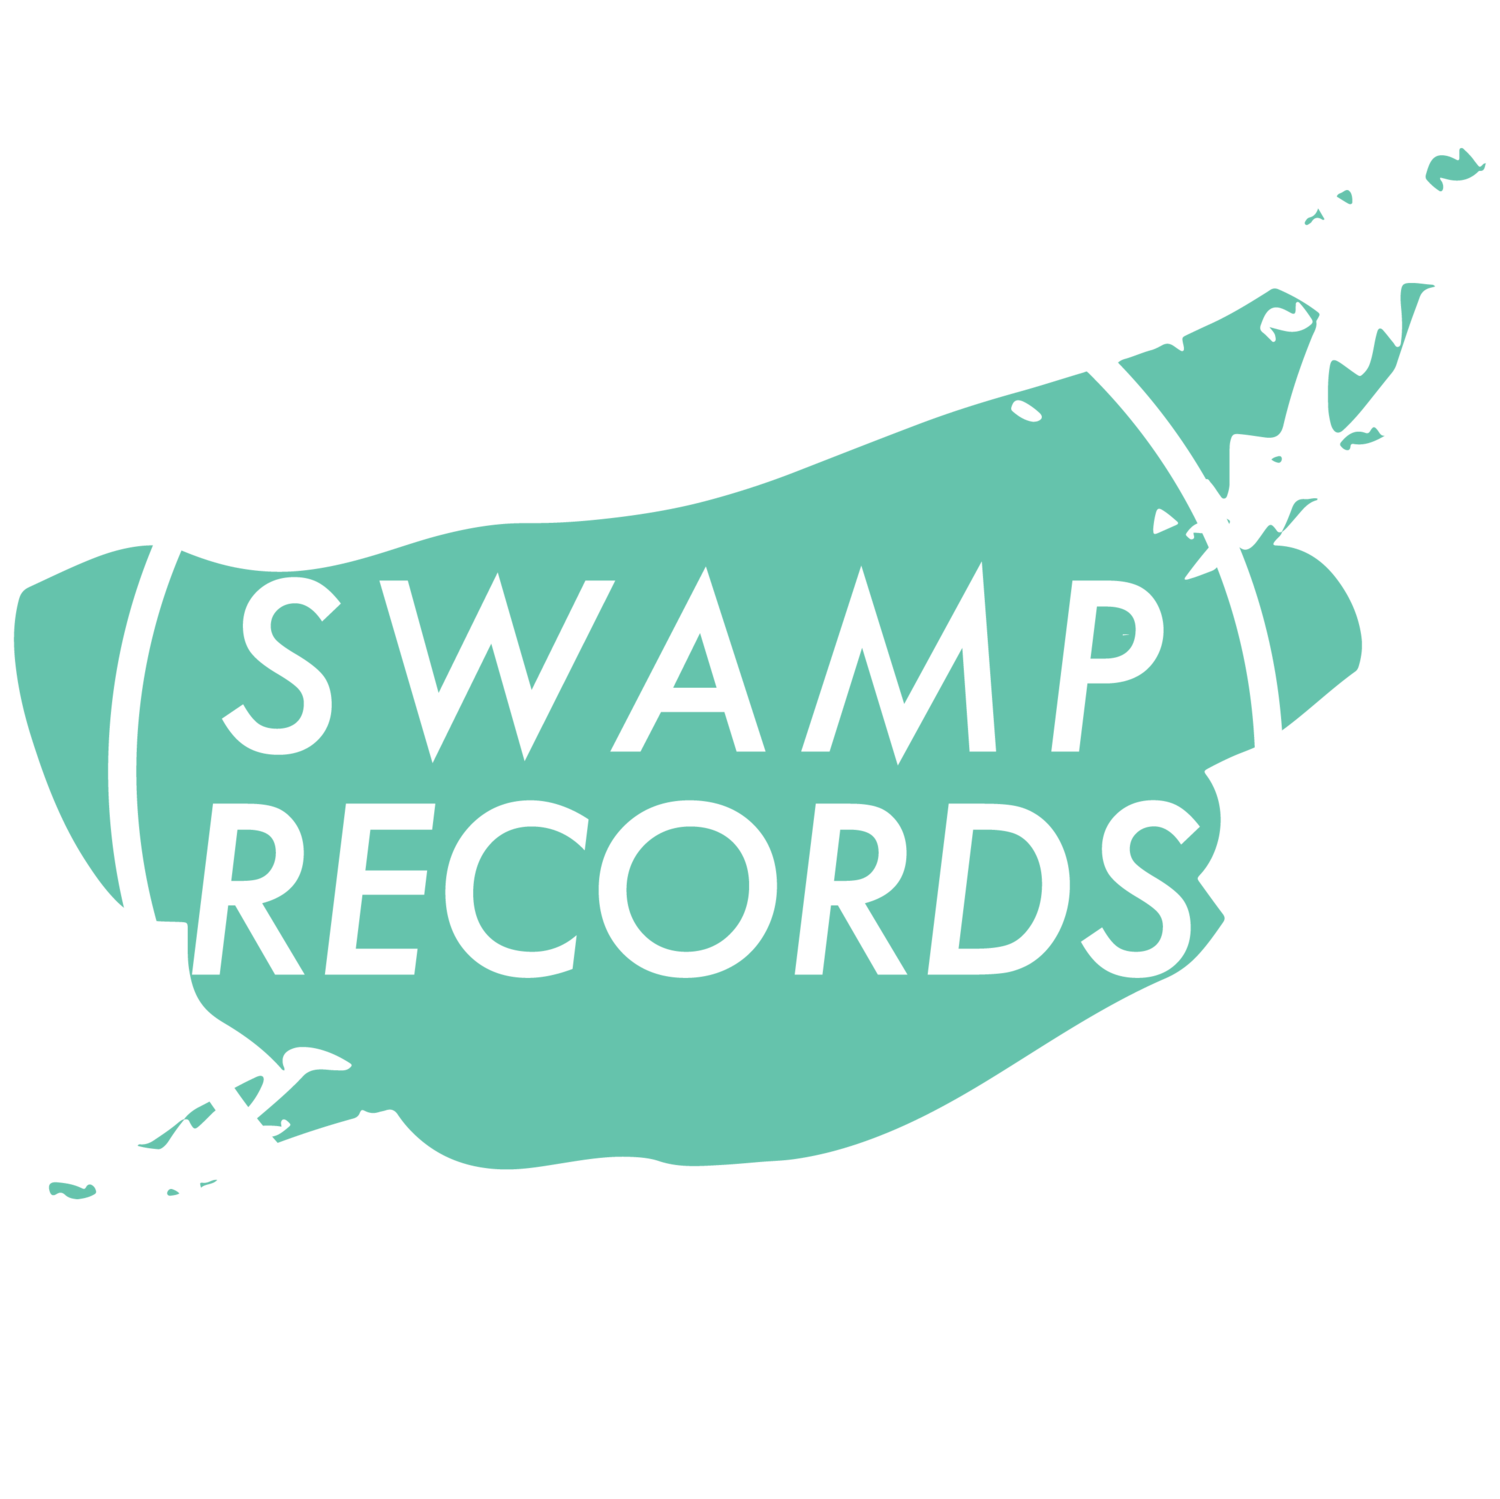 Swamp Records